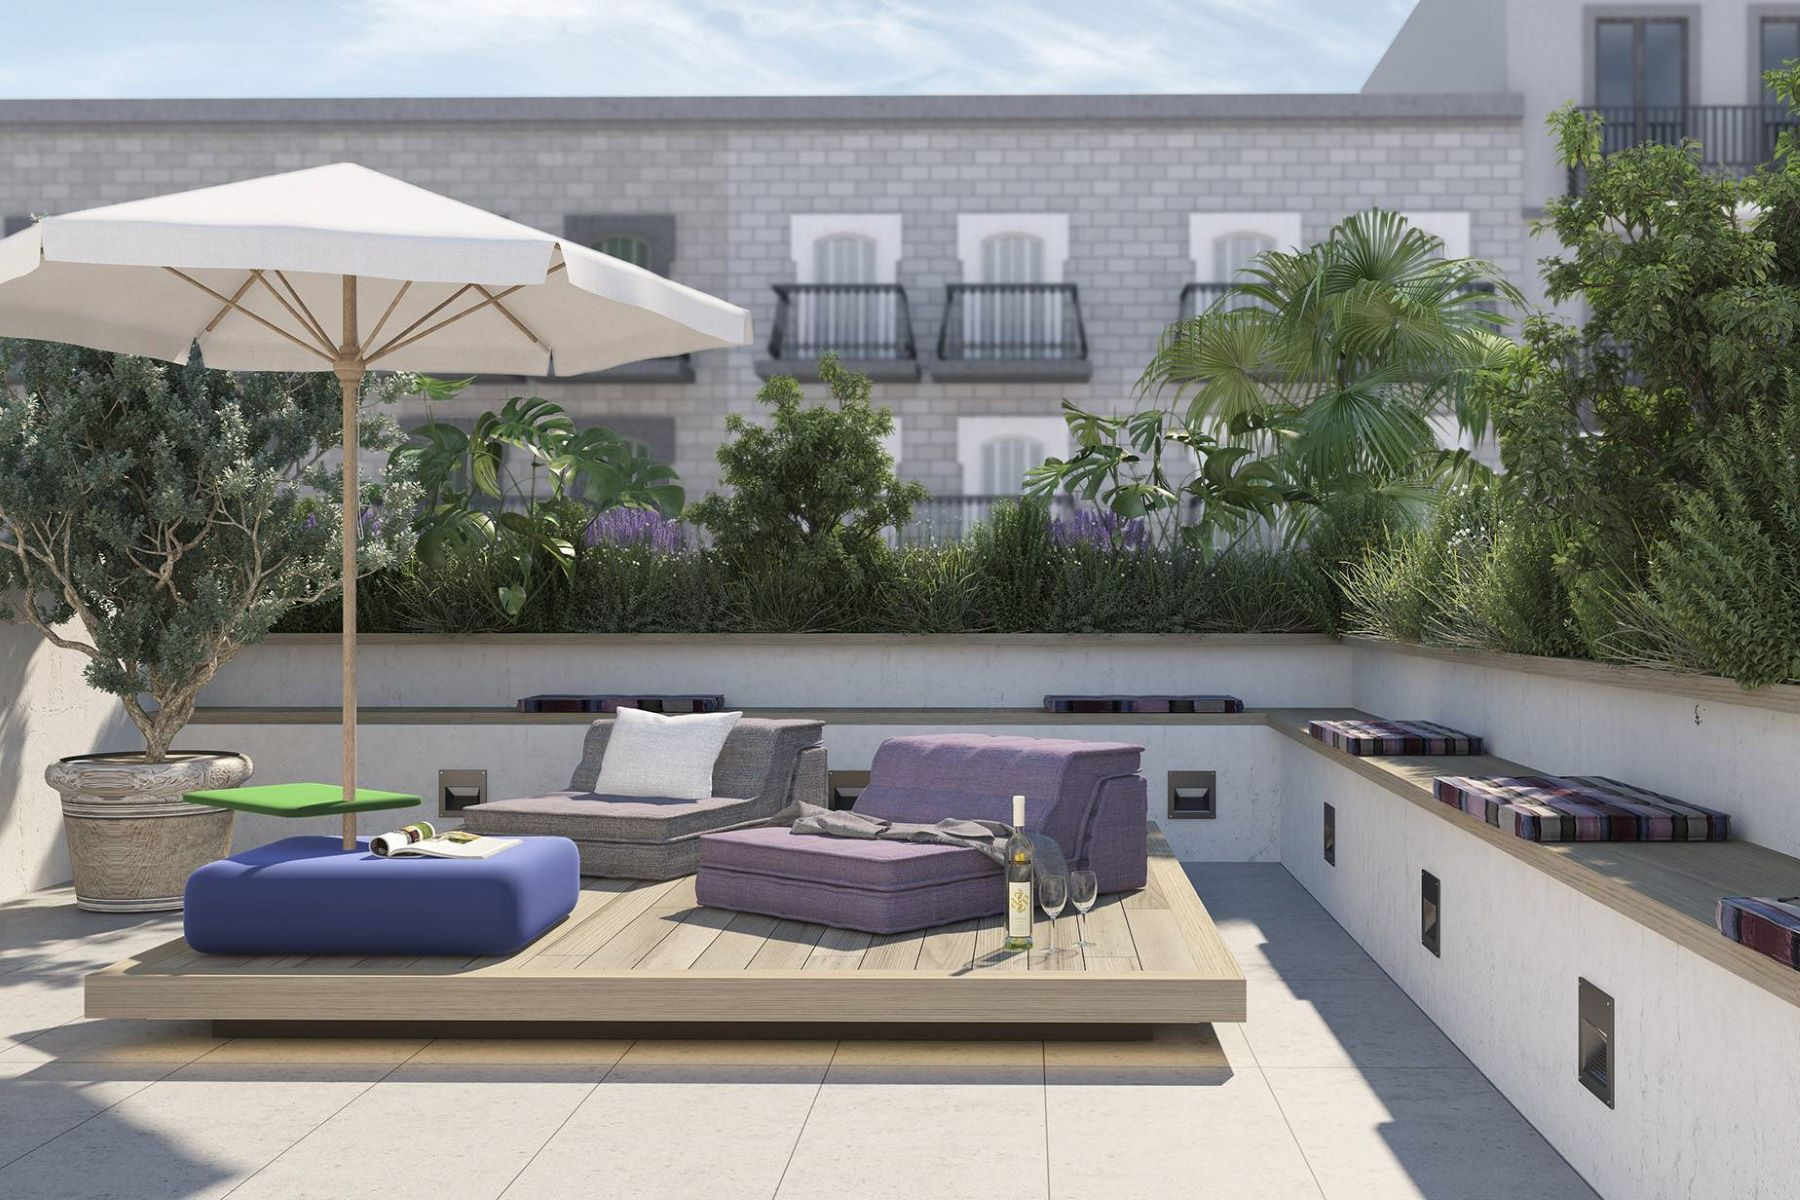 Apartment for Sale at Bran New Penthouse in Poble Sec Barcelona City, Barcelona, 08004 Spain